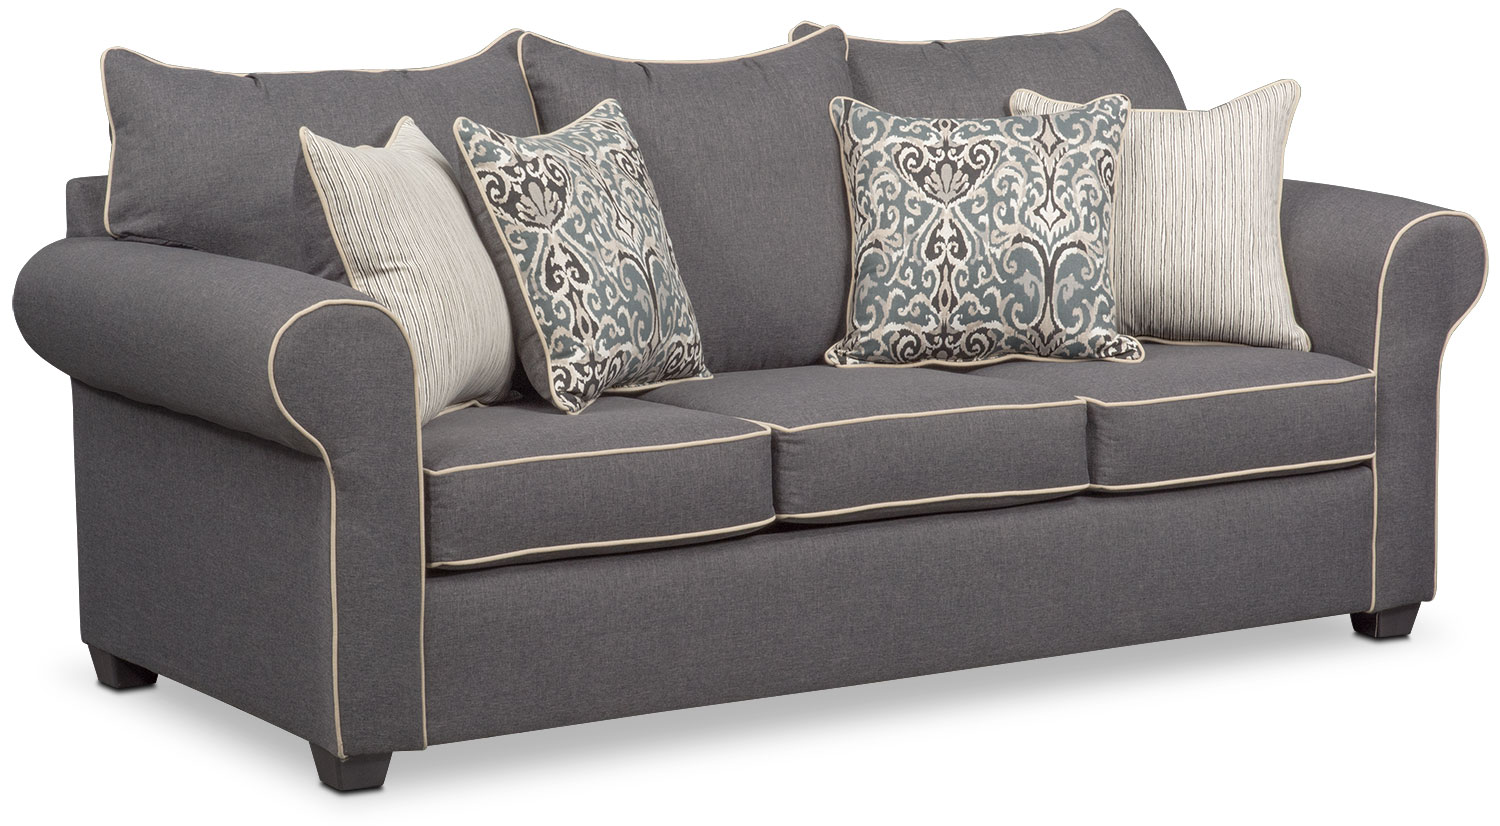 Carla queen sleeper sofa value city furniture and mattresses